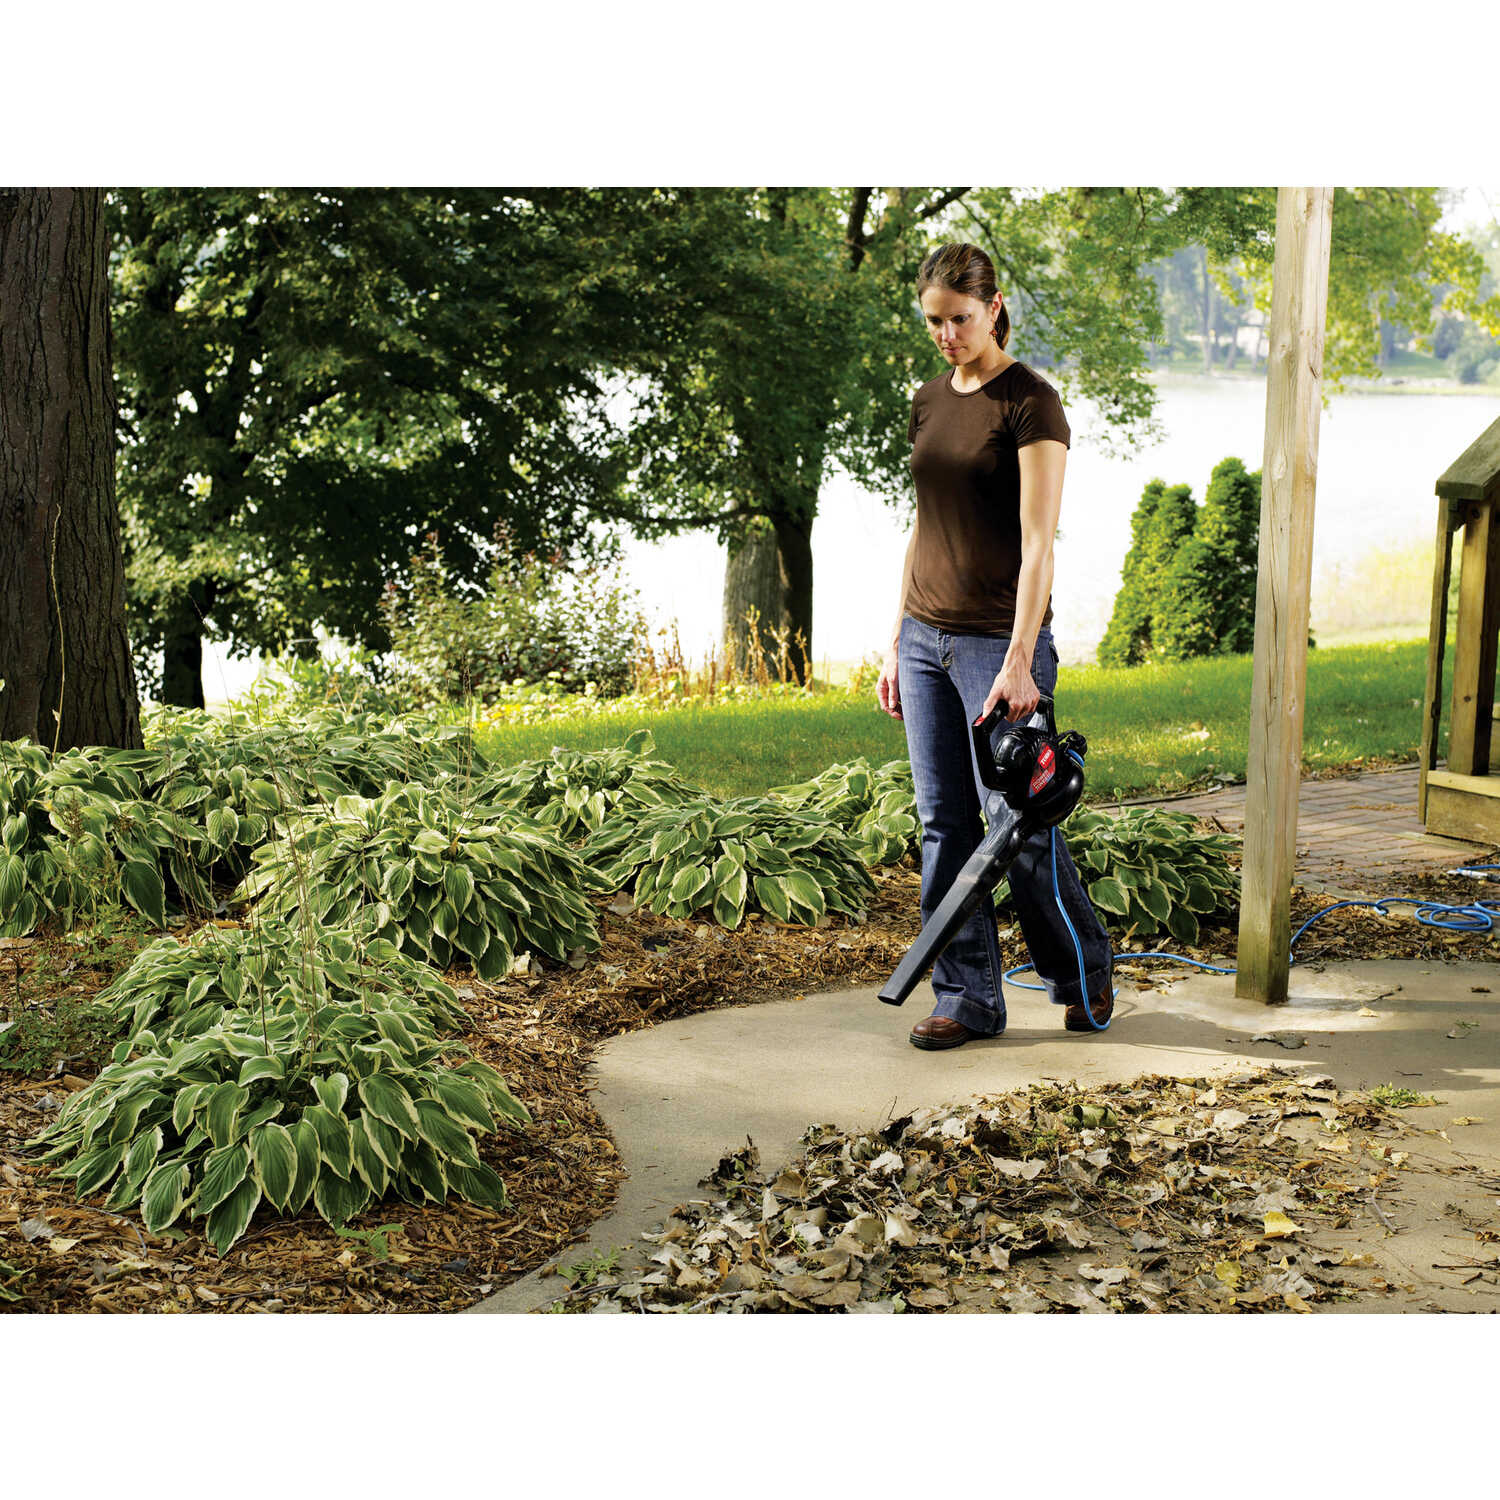 Toro  Electric  Handheld  Leaf Blower